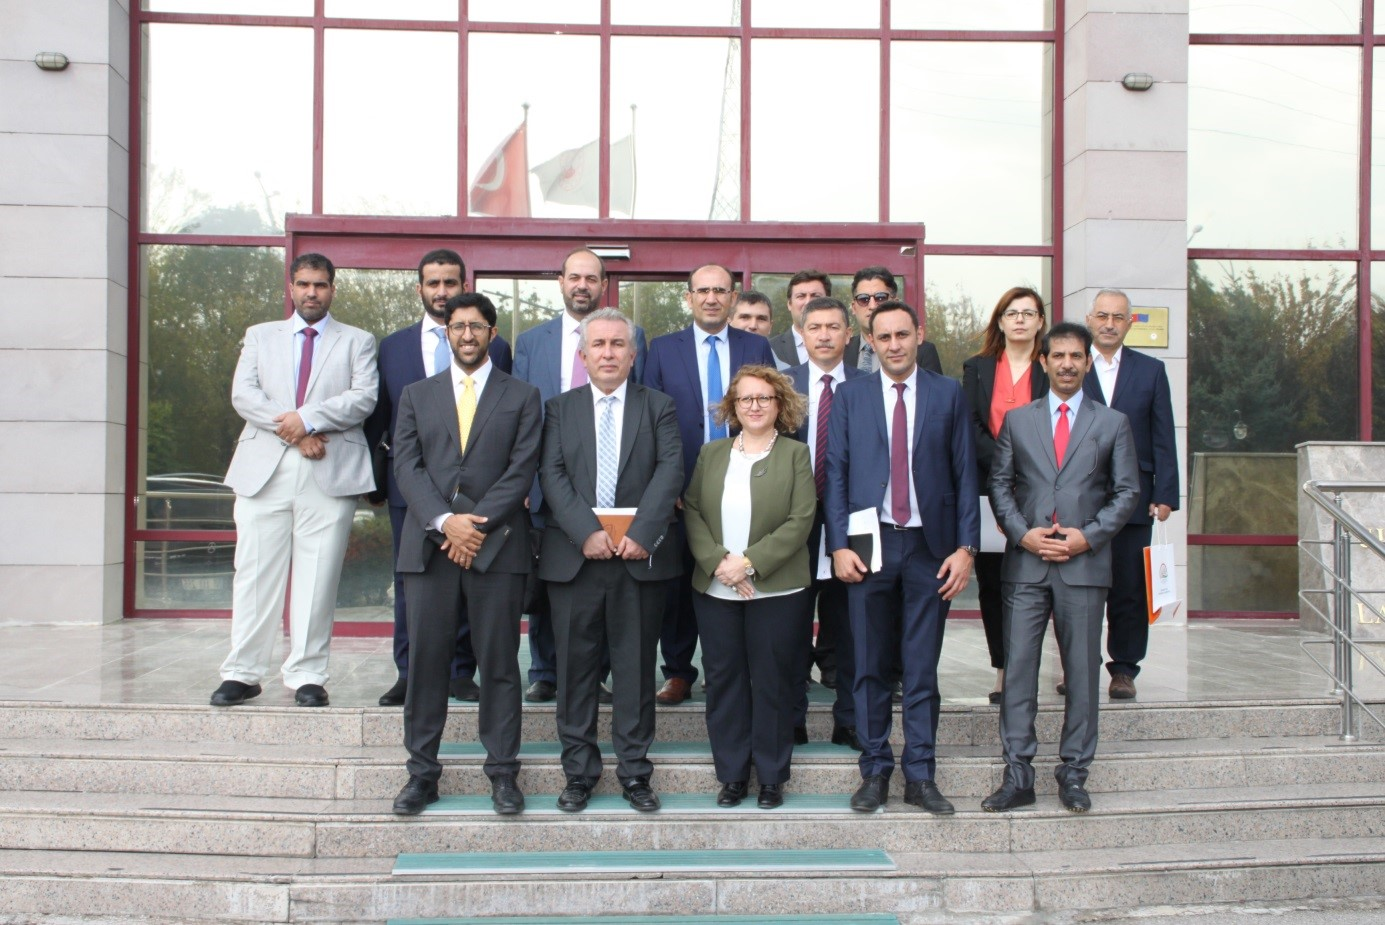 VISIT OF QATAR DELEGATION TO OUR DIRECTORATE